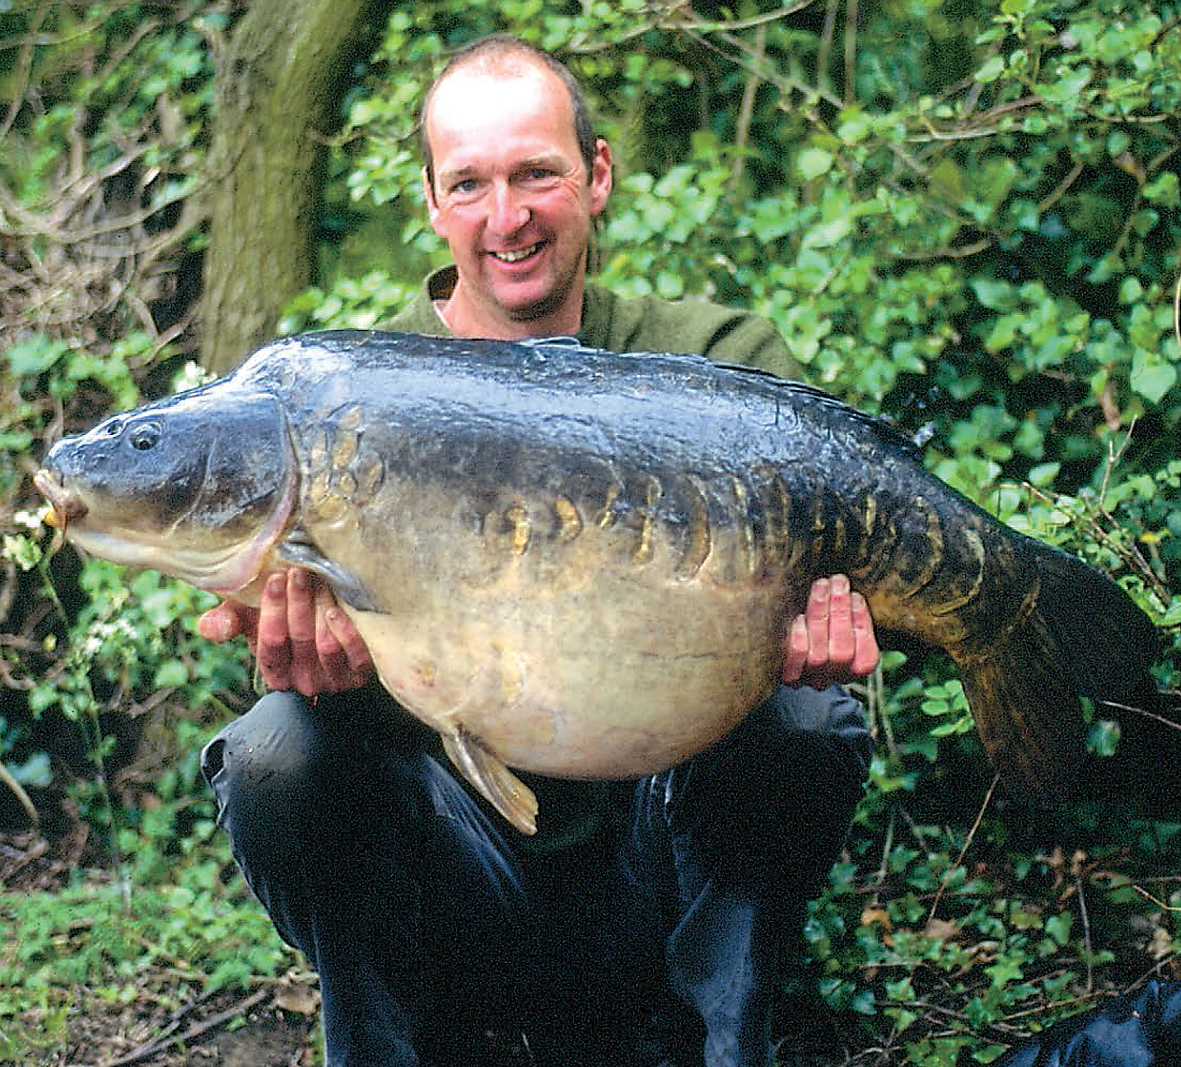 When Dave Forward wasn't watching his mate feed the sheep, he caught the odd fish... the Kingsmead mirror